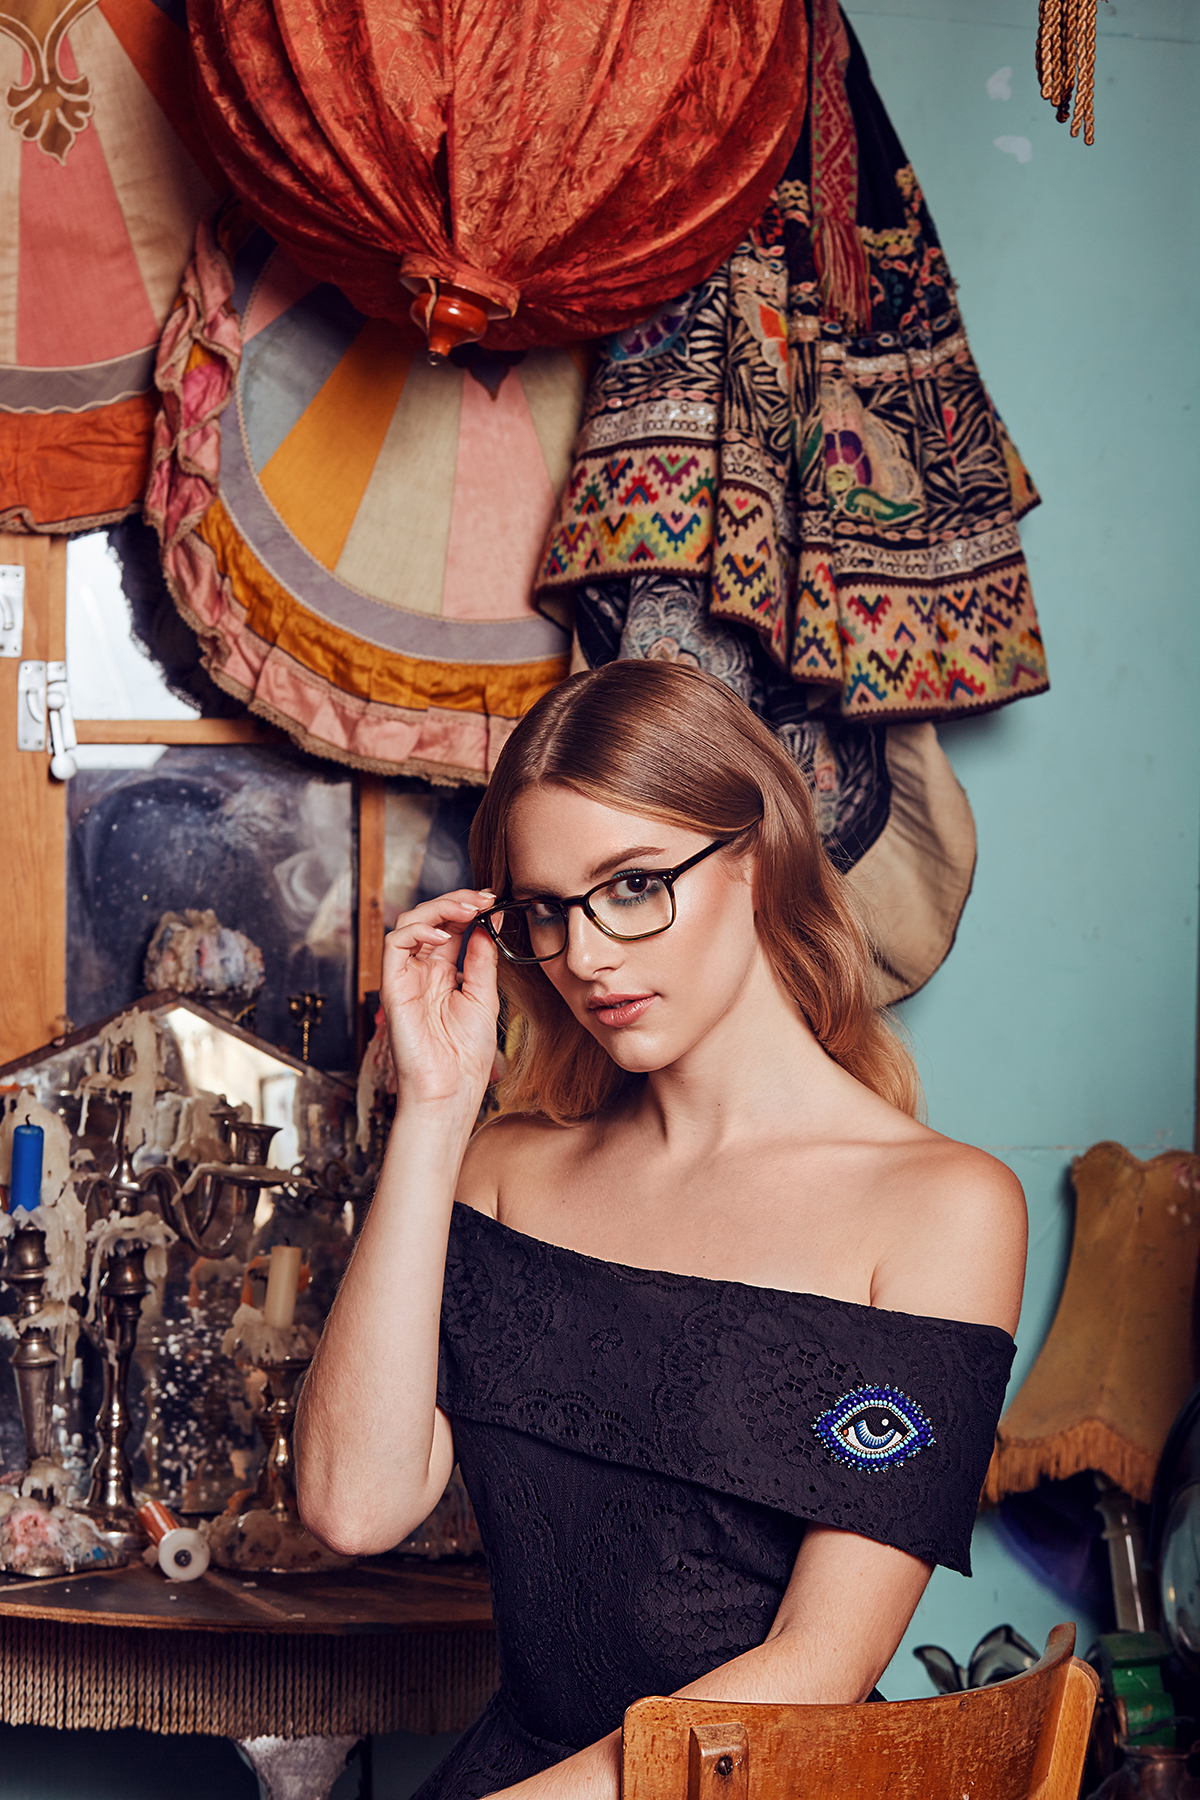 Chakshu London_Eyewear Campaign_Chakshu London - Eyewear Campaign5333_WEB